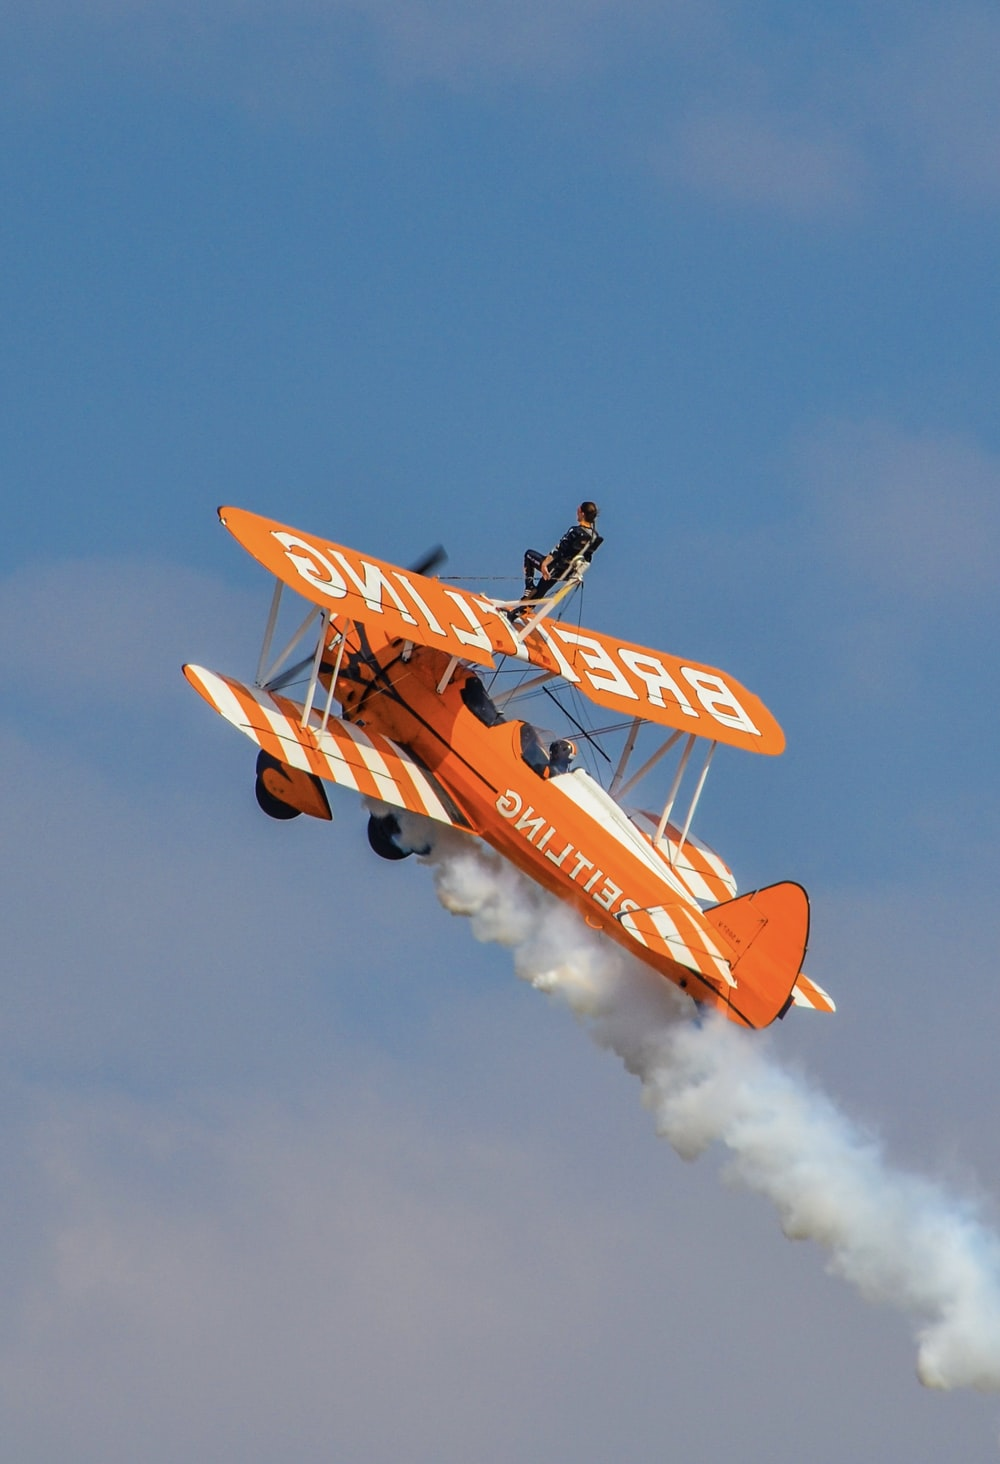 orange and yellow plane flying in the sky